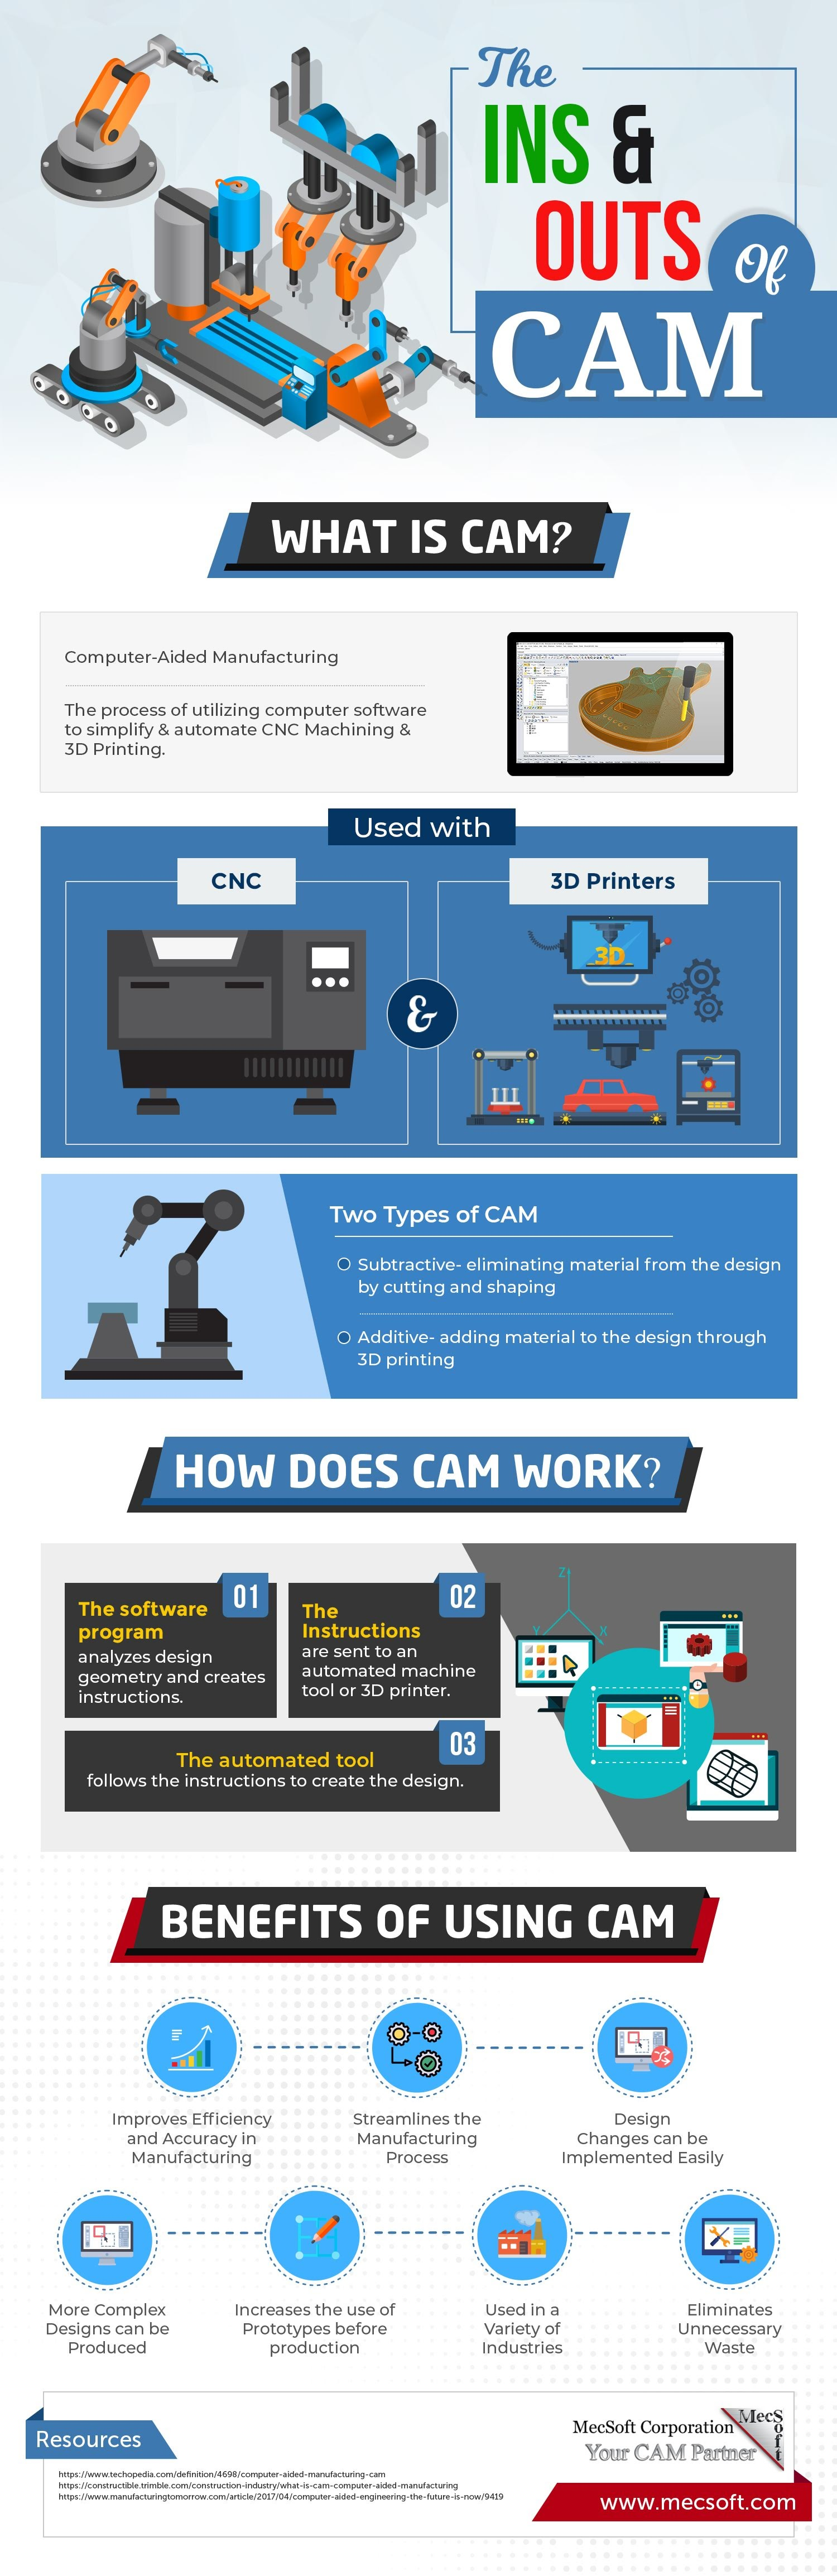 The Ins & Outs of CAM #infographic